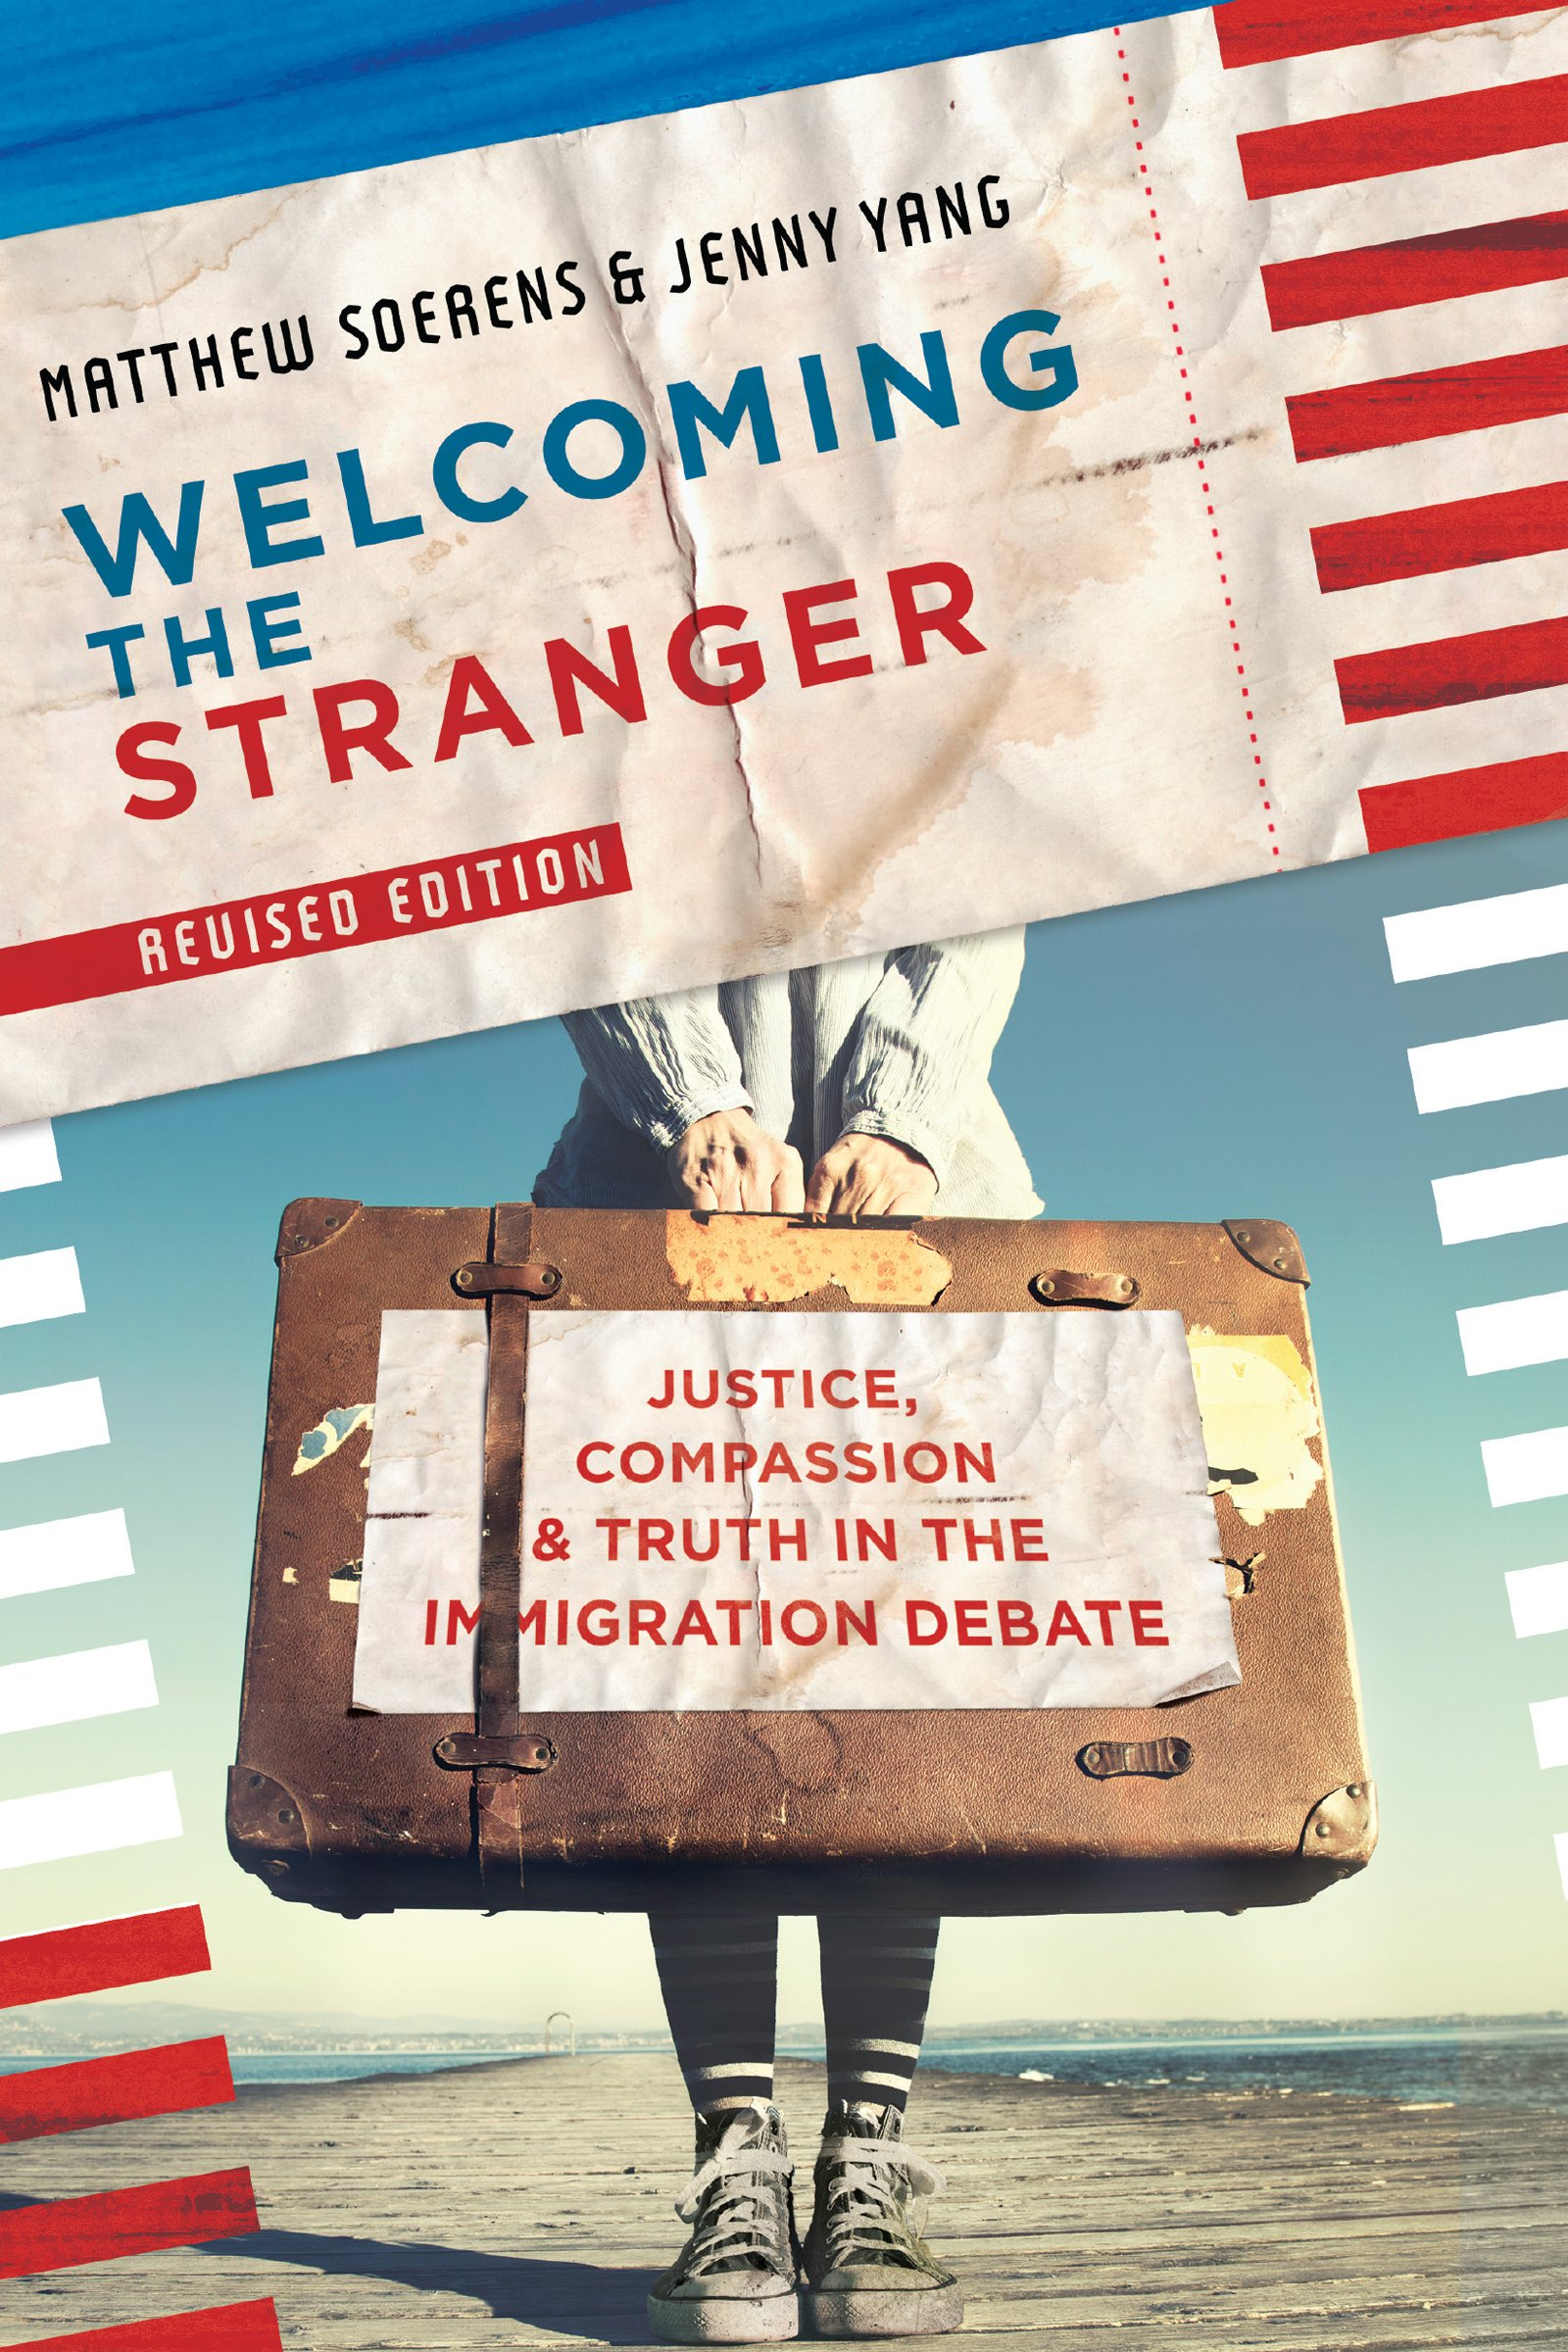 Welcoming the Stranger: Justice, Compassion & Truth in the Immigration  Debate: Matthew Soerens, Jenny Yang, Leith Anderson: 9780830845392:  Amazon.com: Books